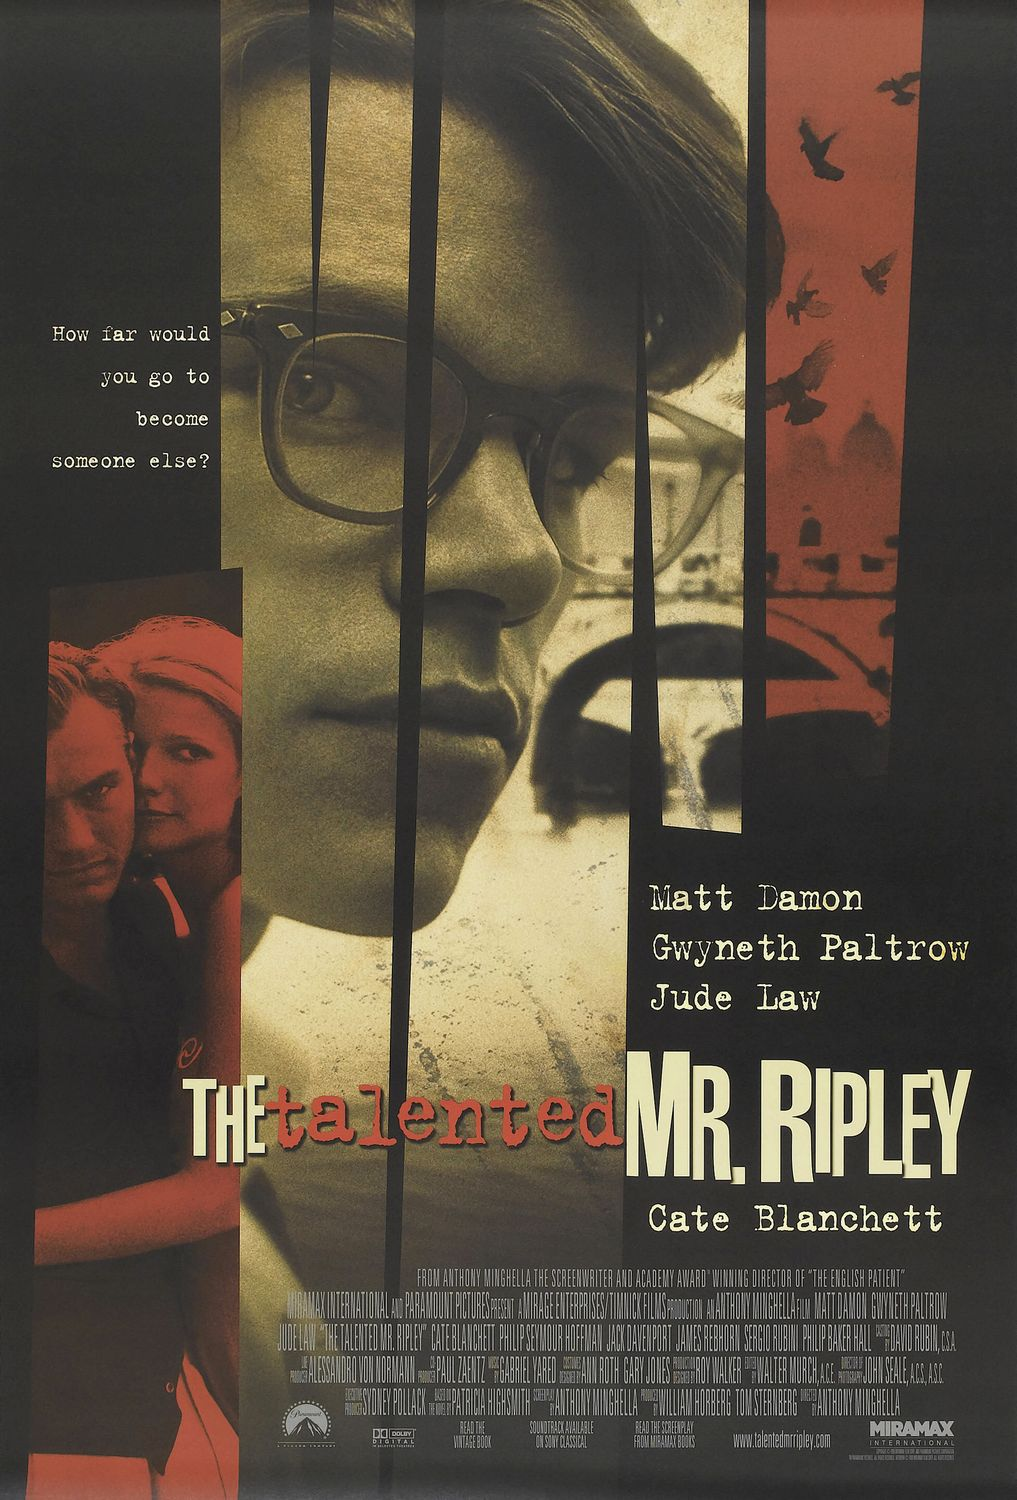 The Talented Mr Ripley (1998)